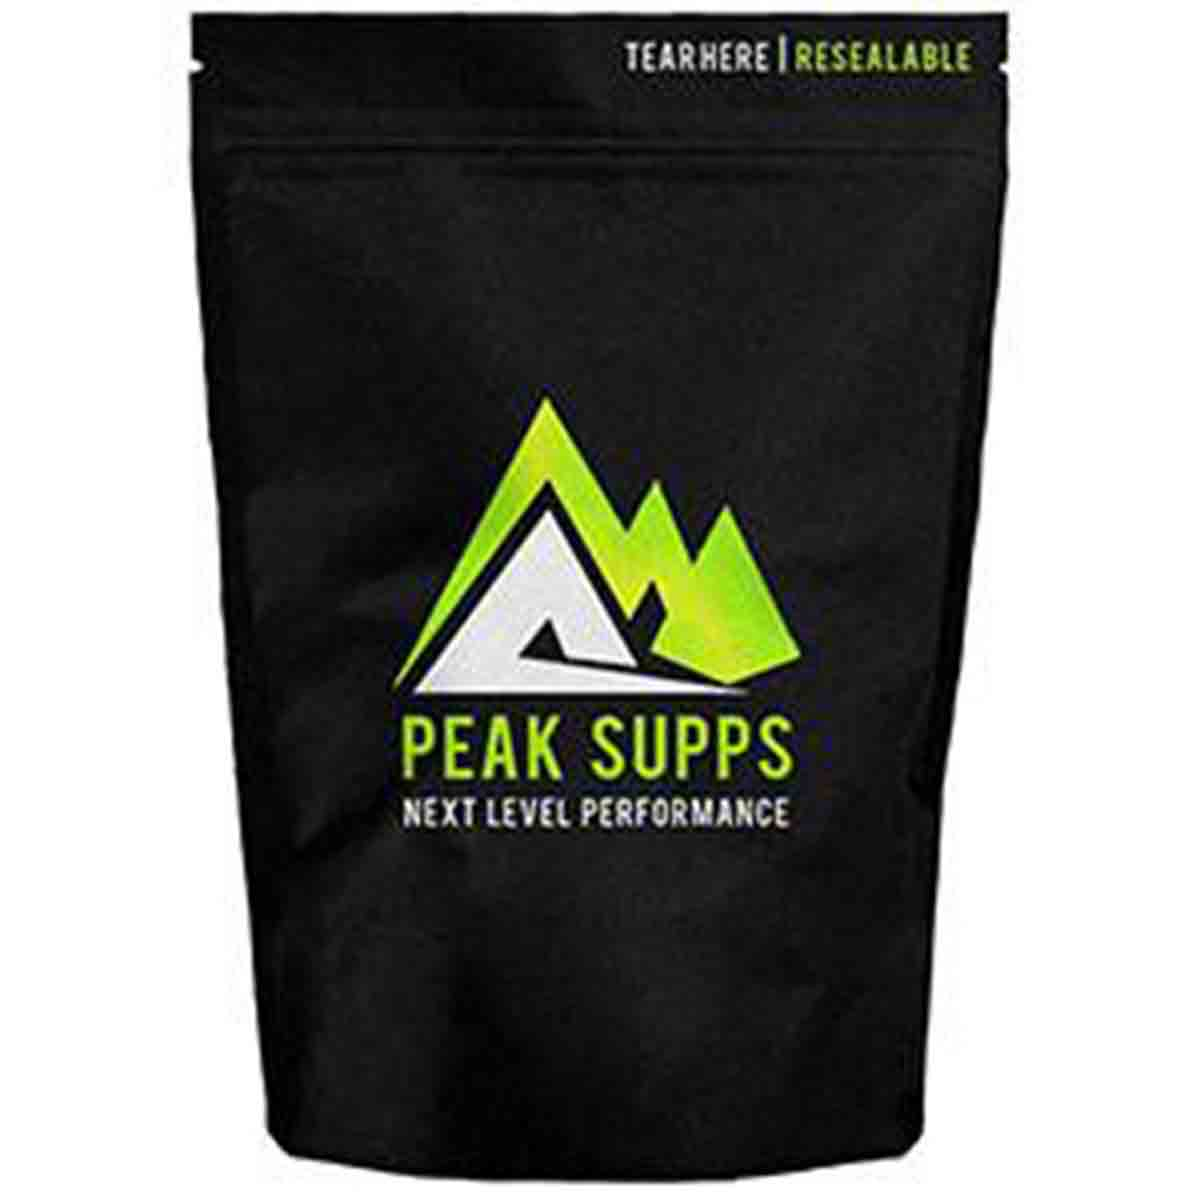 Peak Supps Carb Blockers